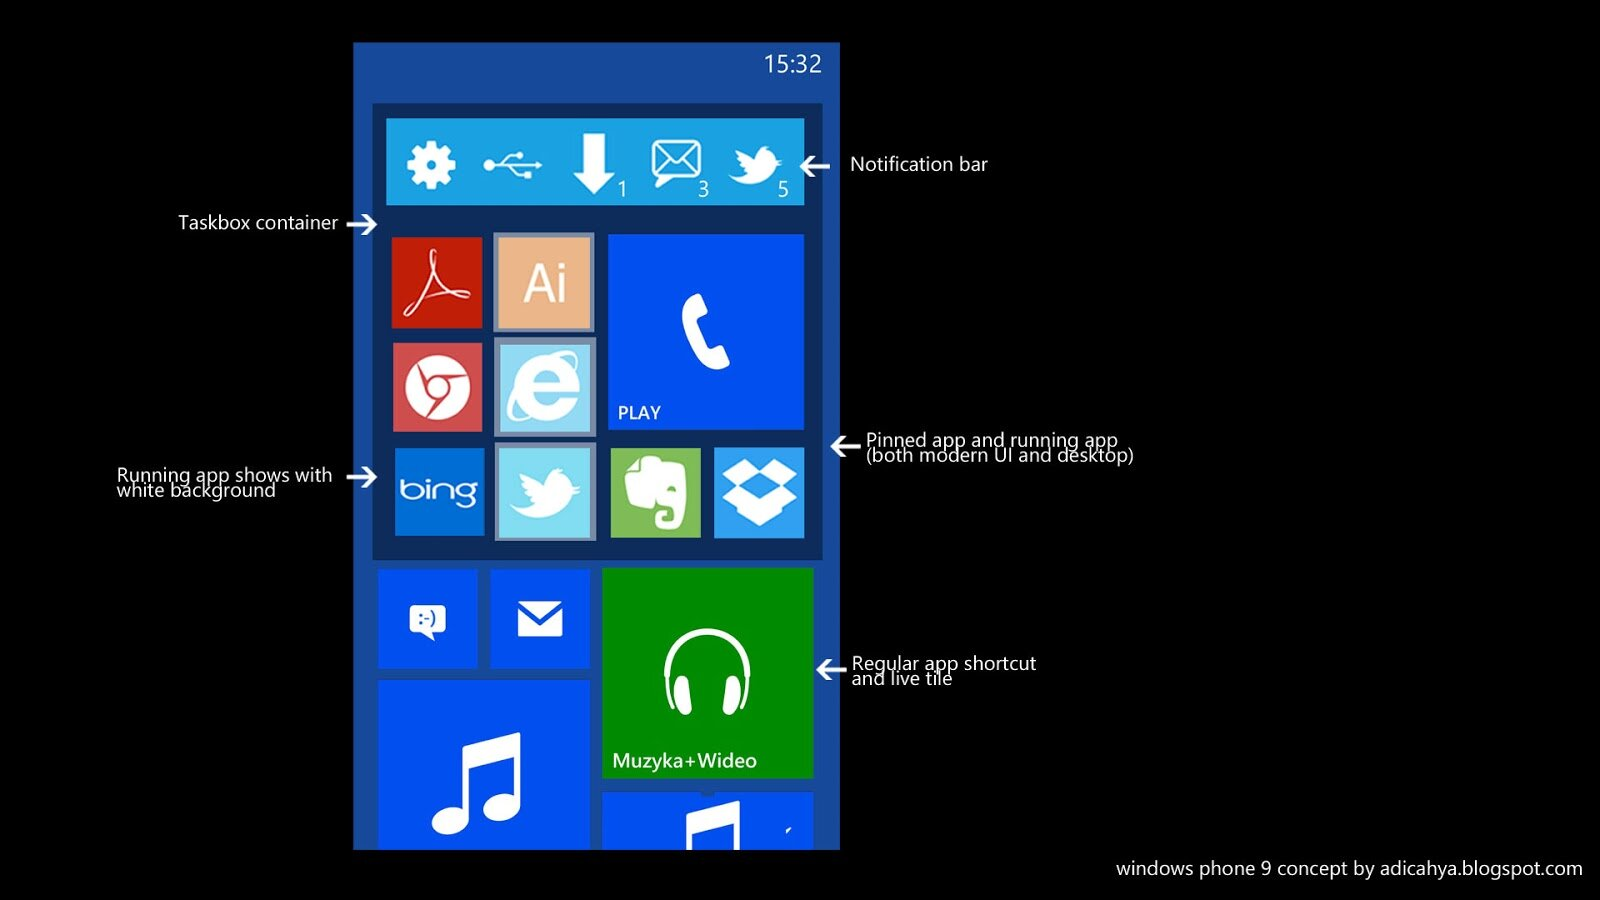 Windows Phone 9